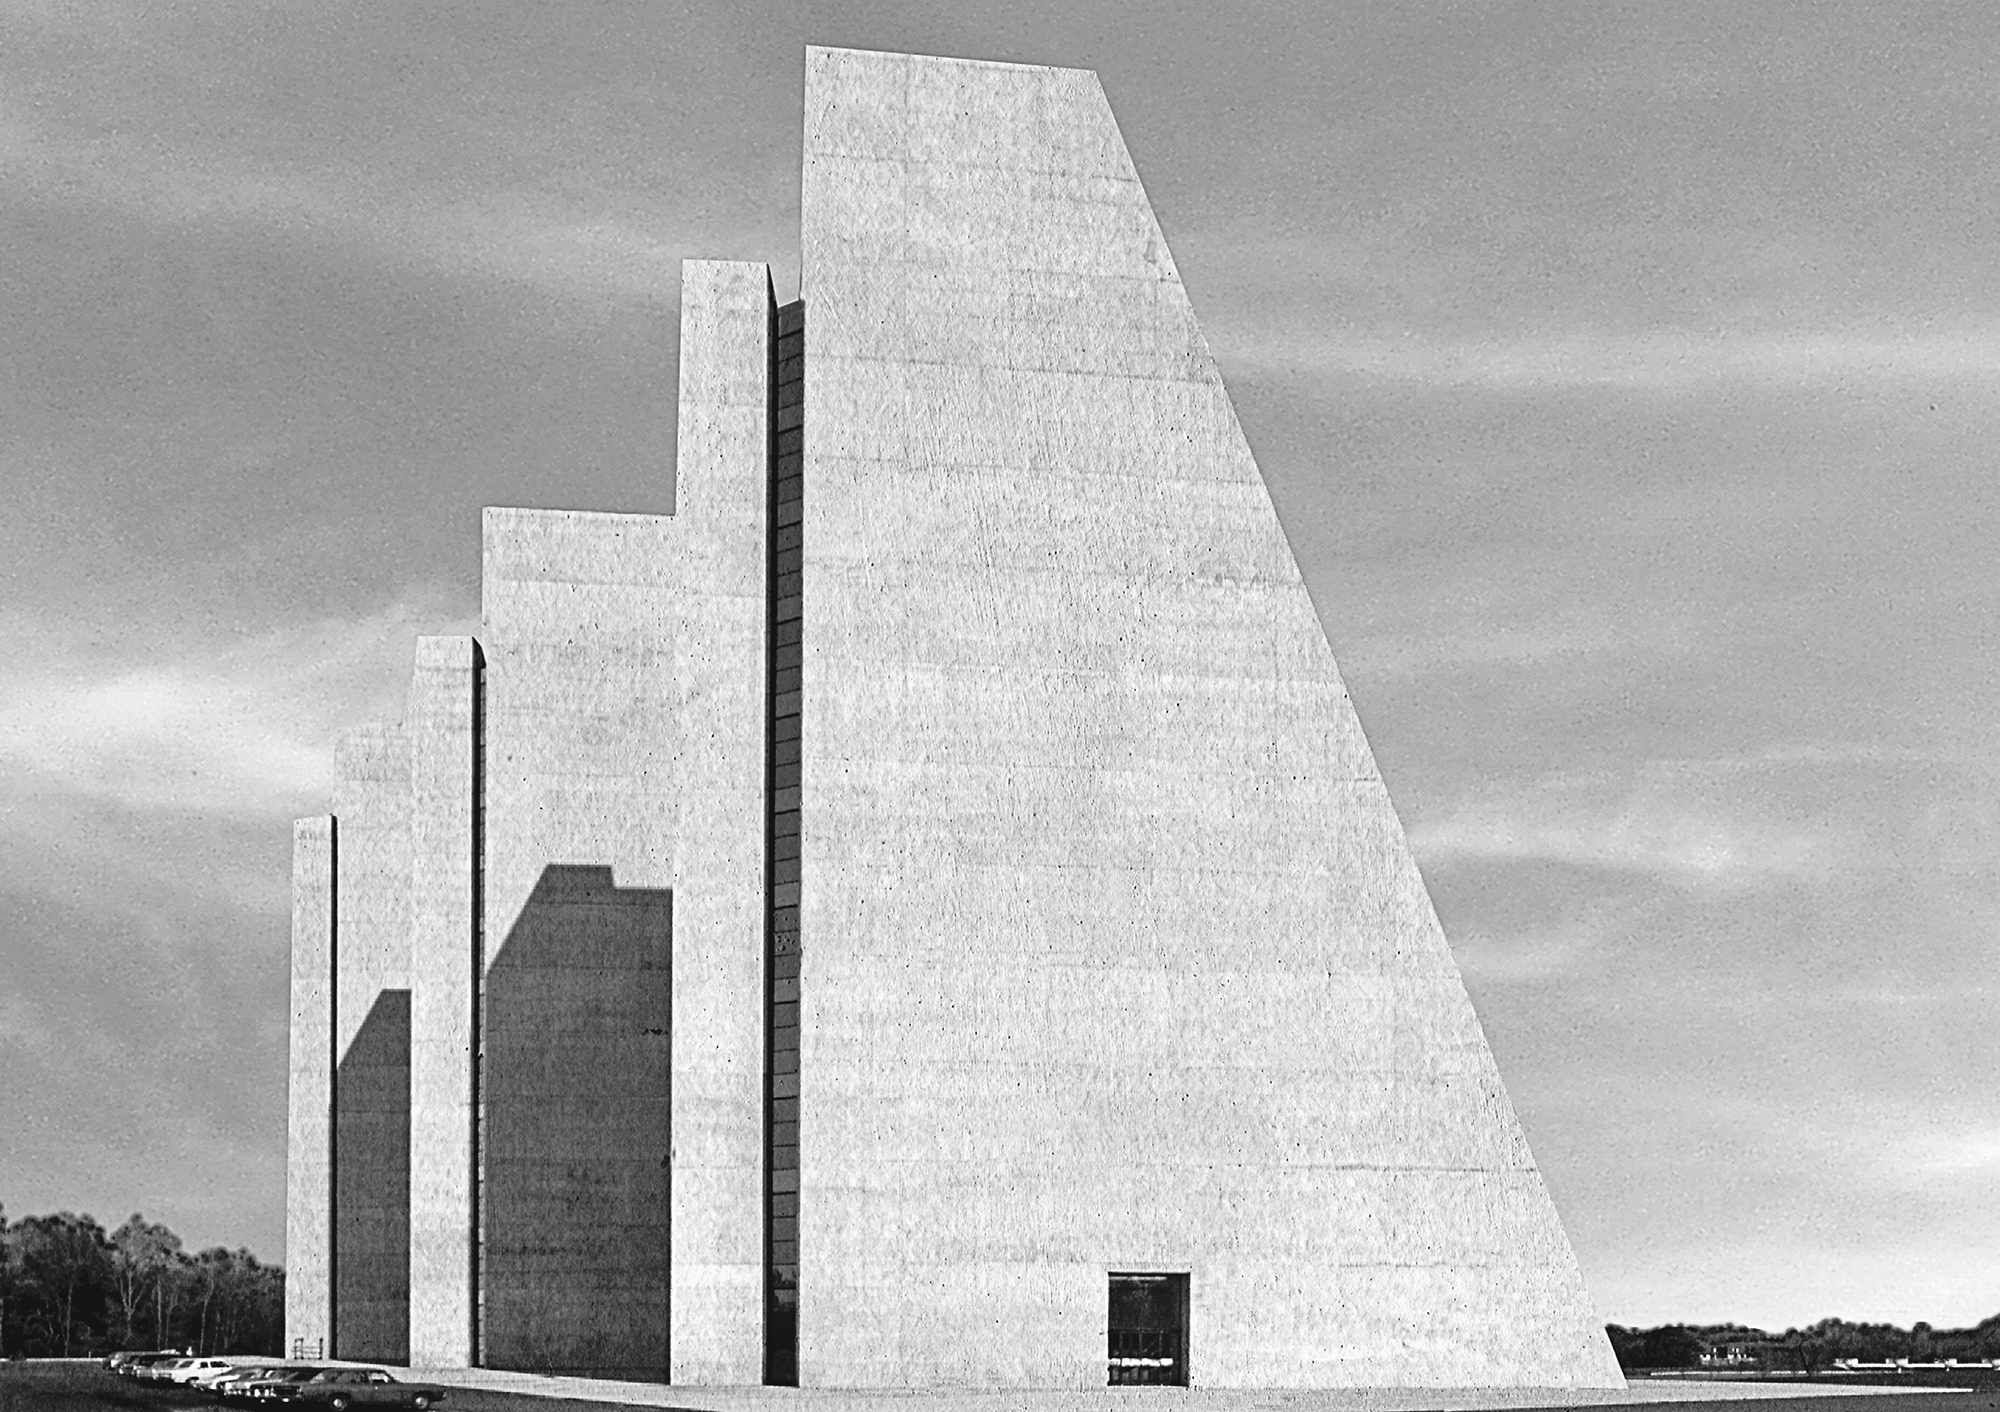 College Life Insurance Company of America headquarters, Atlas of Brutalist Architecture